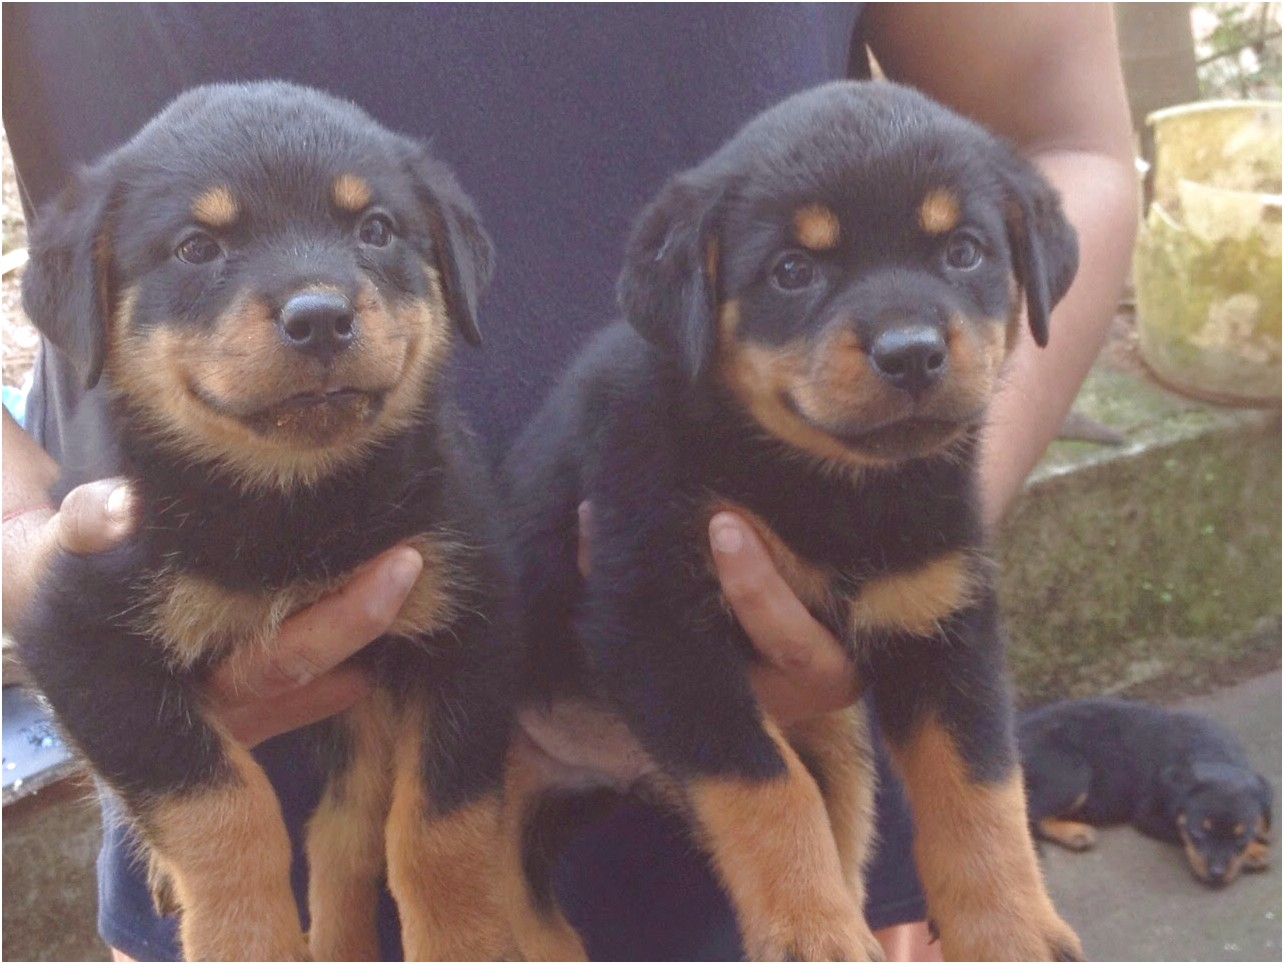 giant rottweiler puppies for sale near me